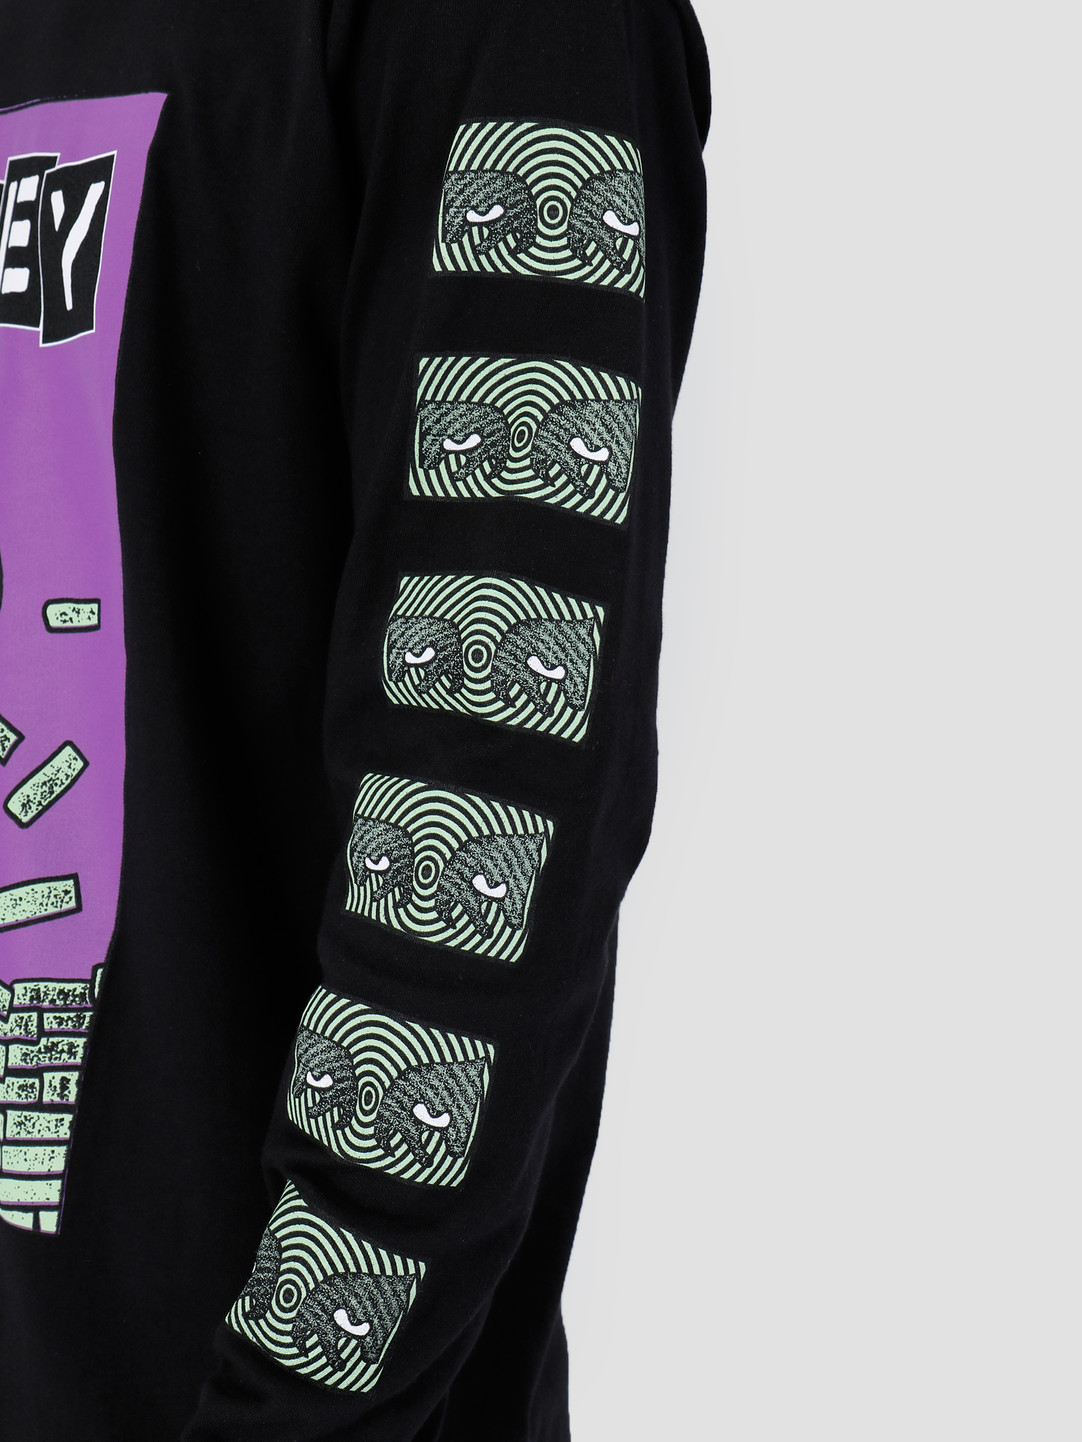 Obey Obey Bust Out Longsleeve Black 164901986-BLK